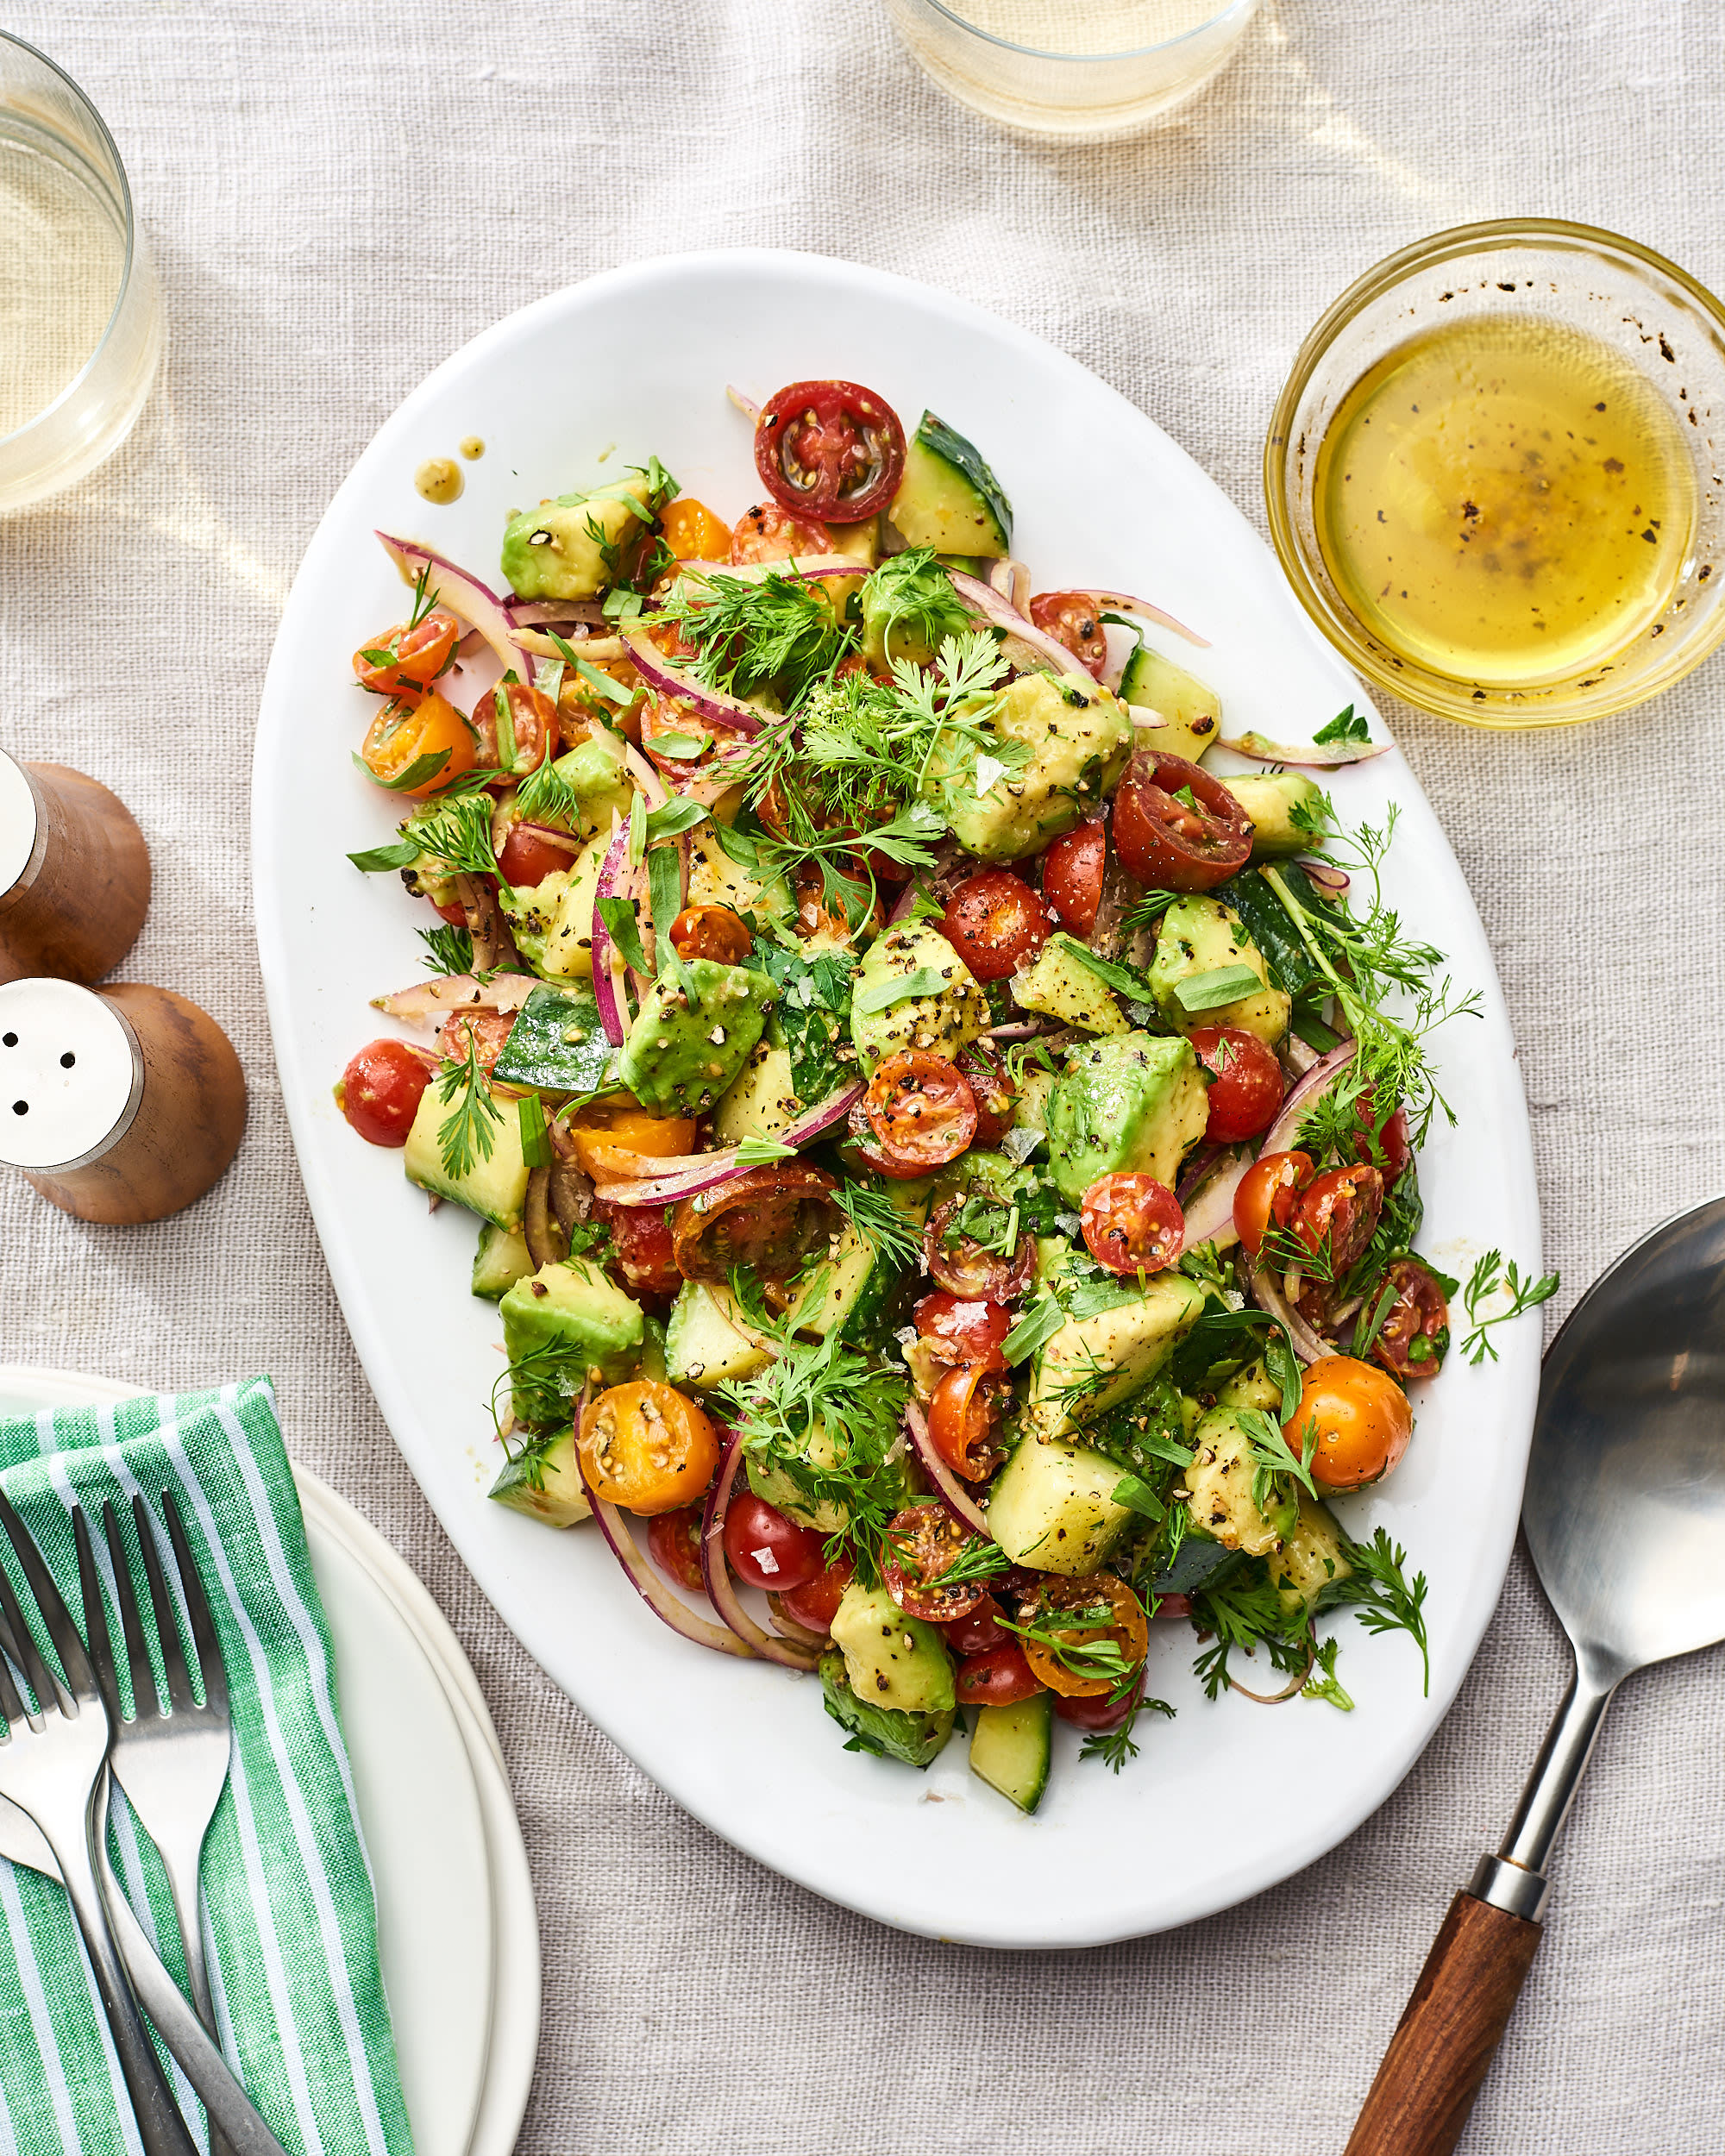 Recipe: Avocado Salad with Tomatoes and Herbs